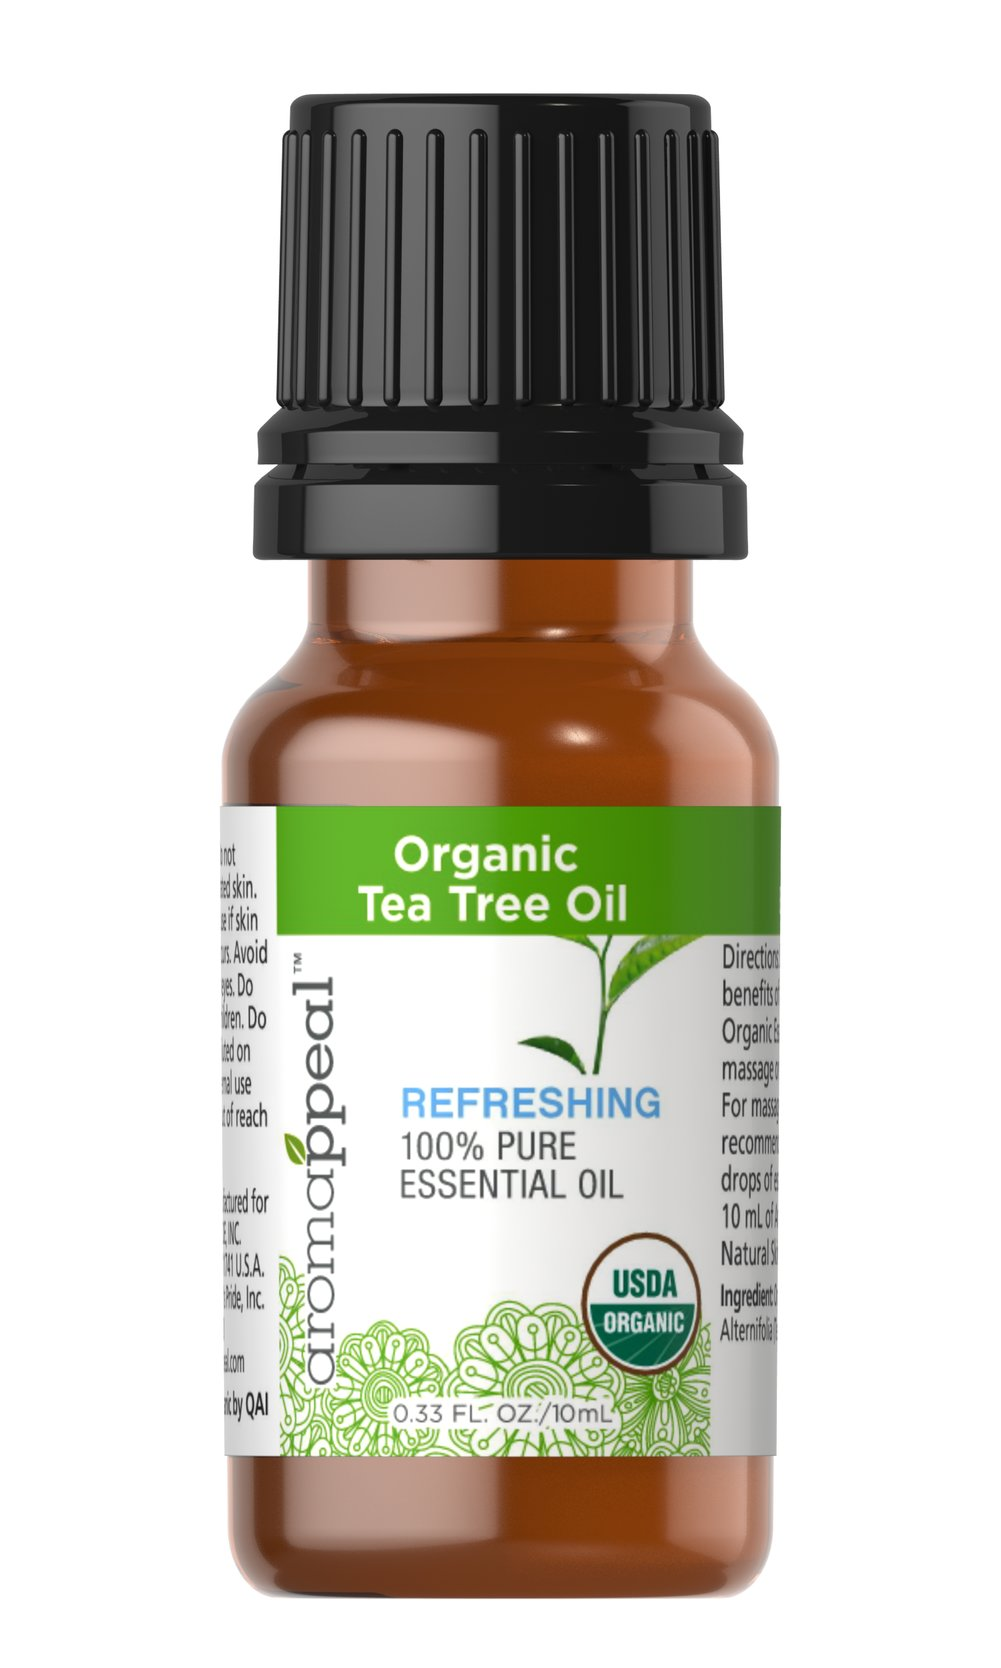 Organic Tea Tree Oil  10 ml Oil  $11.89